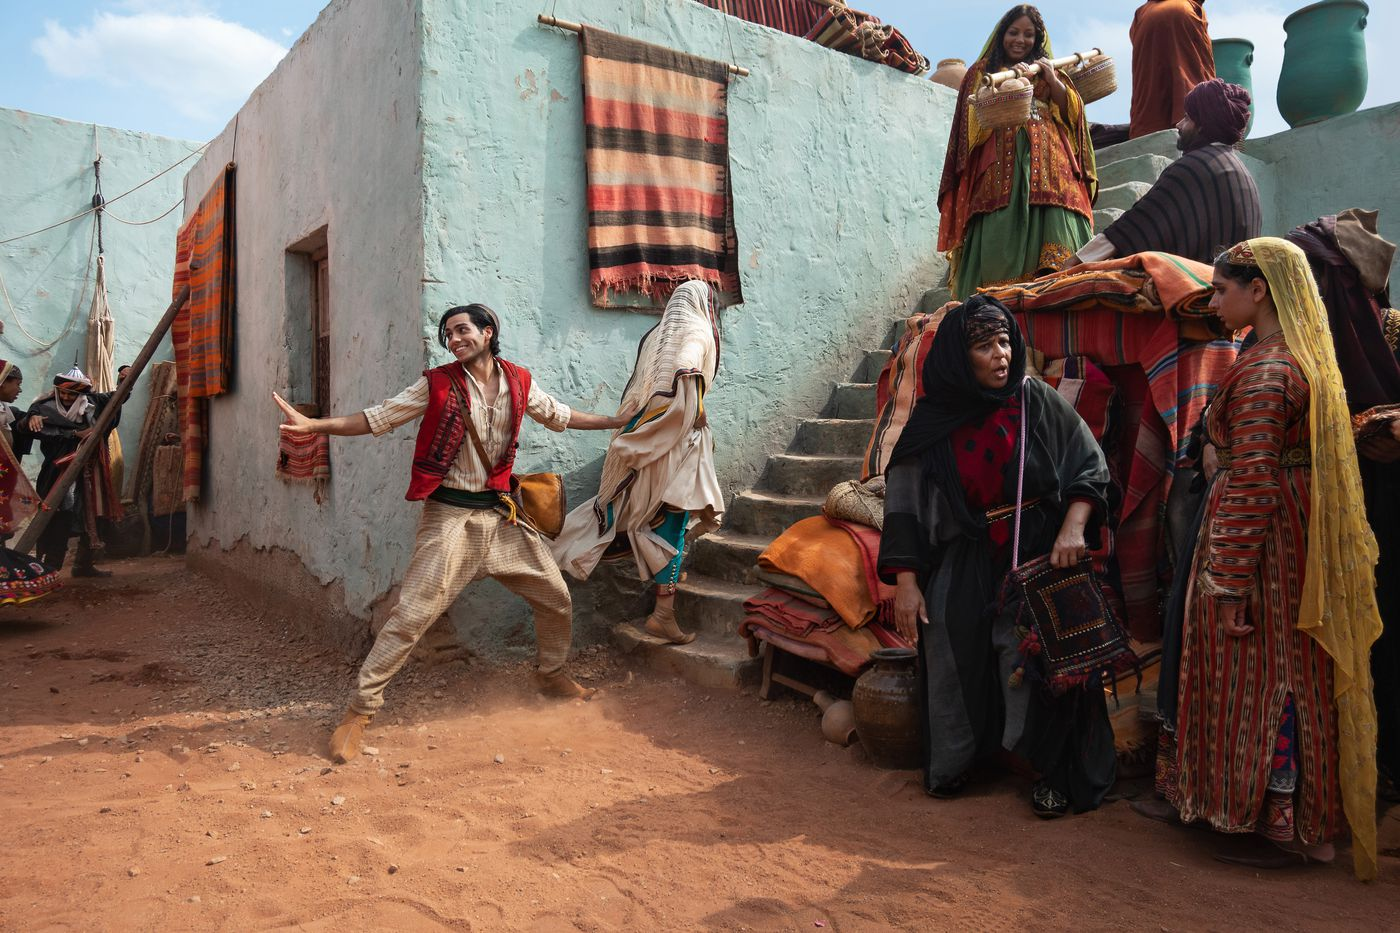 Disney S Aladdin Remake Feels Weirdly Unfinished The Verge